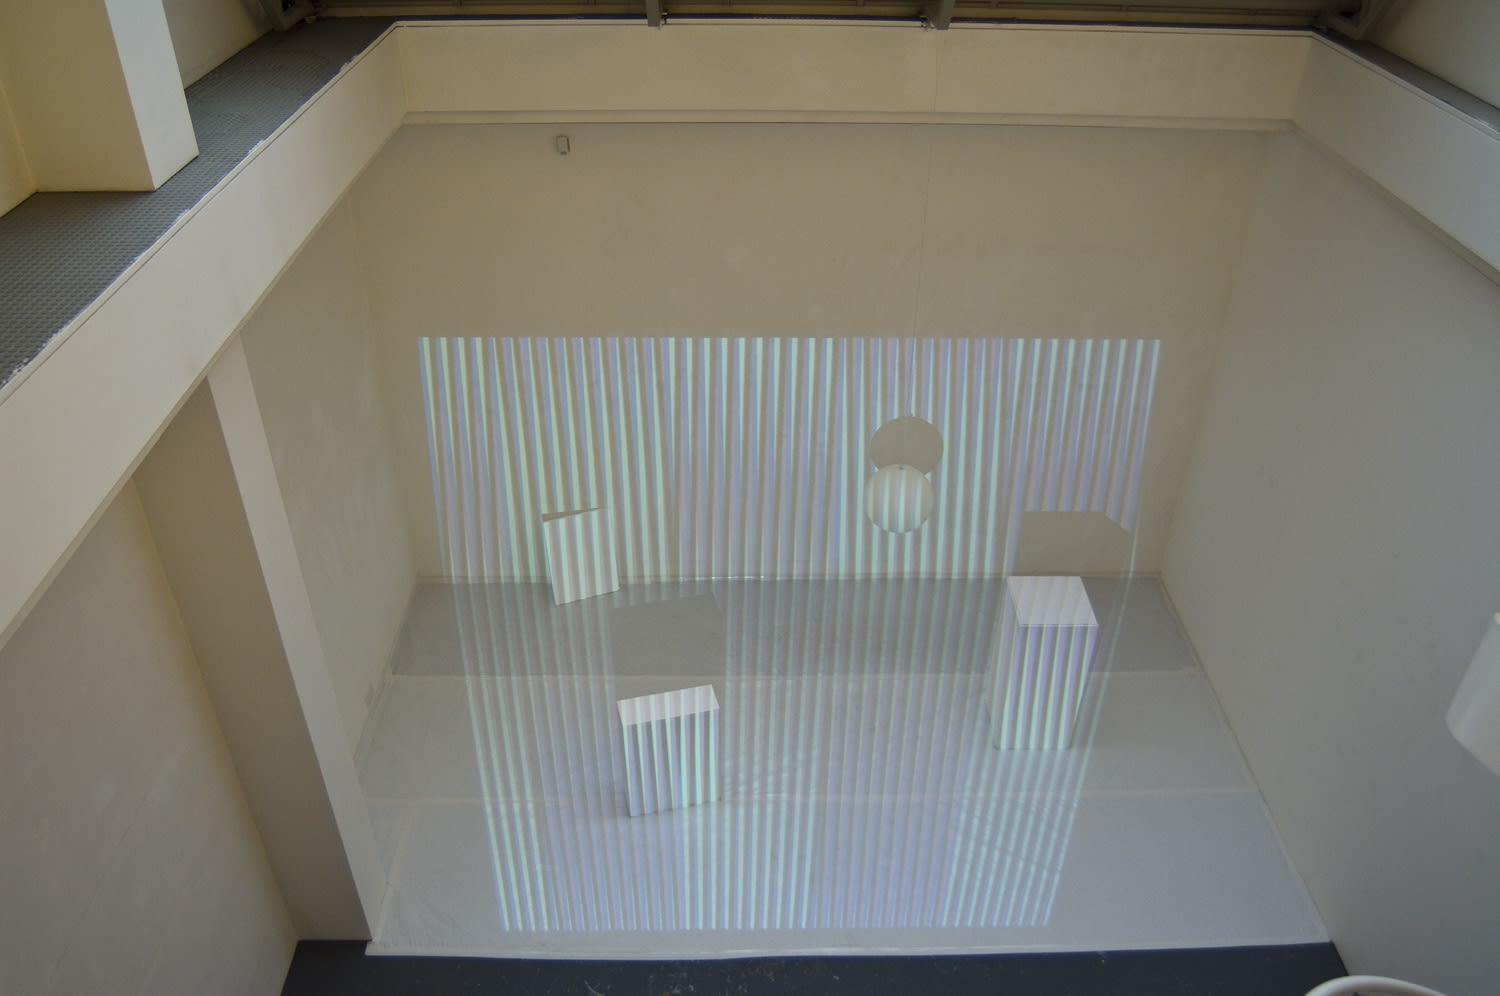 "<span class=""link fancybox-details-link""><a href=""/exhibitions/92/works/image_standalone291/"">View Detail Page</a></span><p>CARLOS CRUZ-DIEZ 